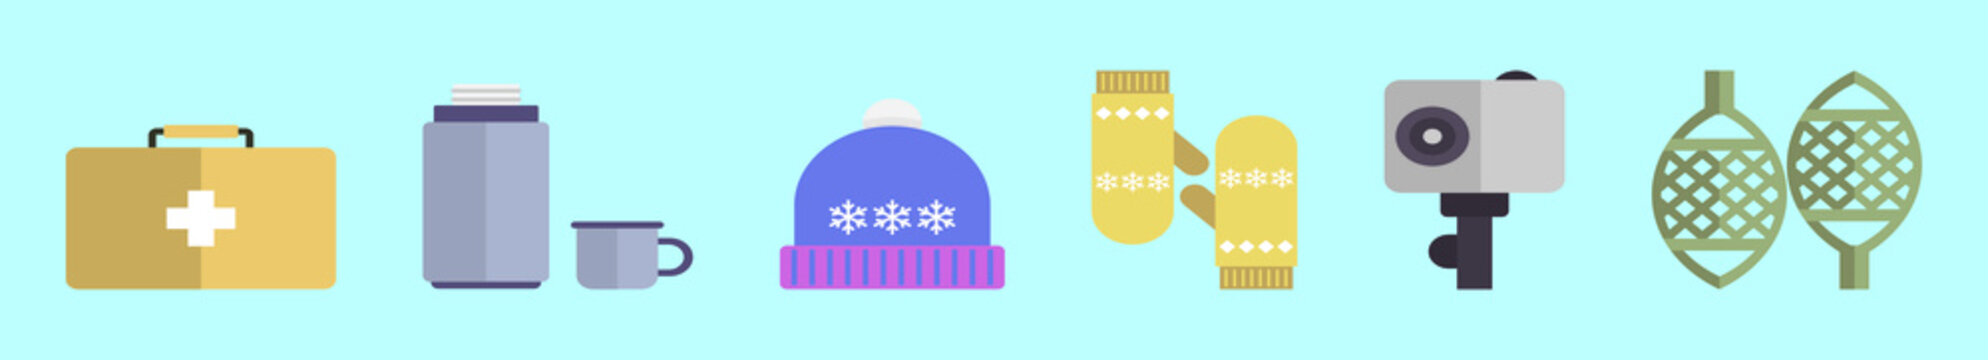 set of winter outdoor kit cartoon icon design template with various models. vector illustration isolated on blue background